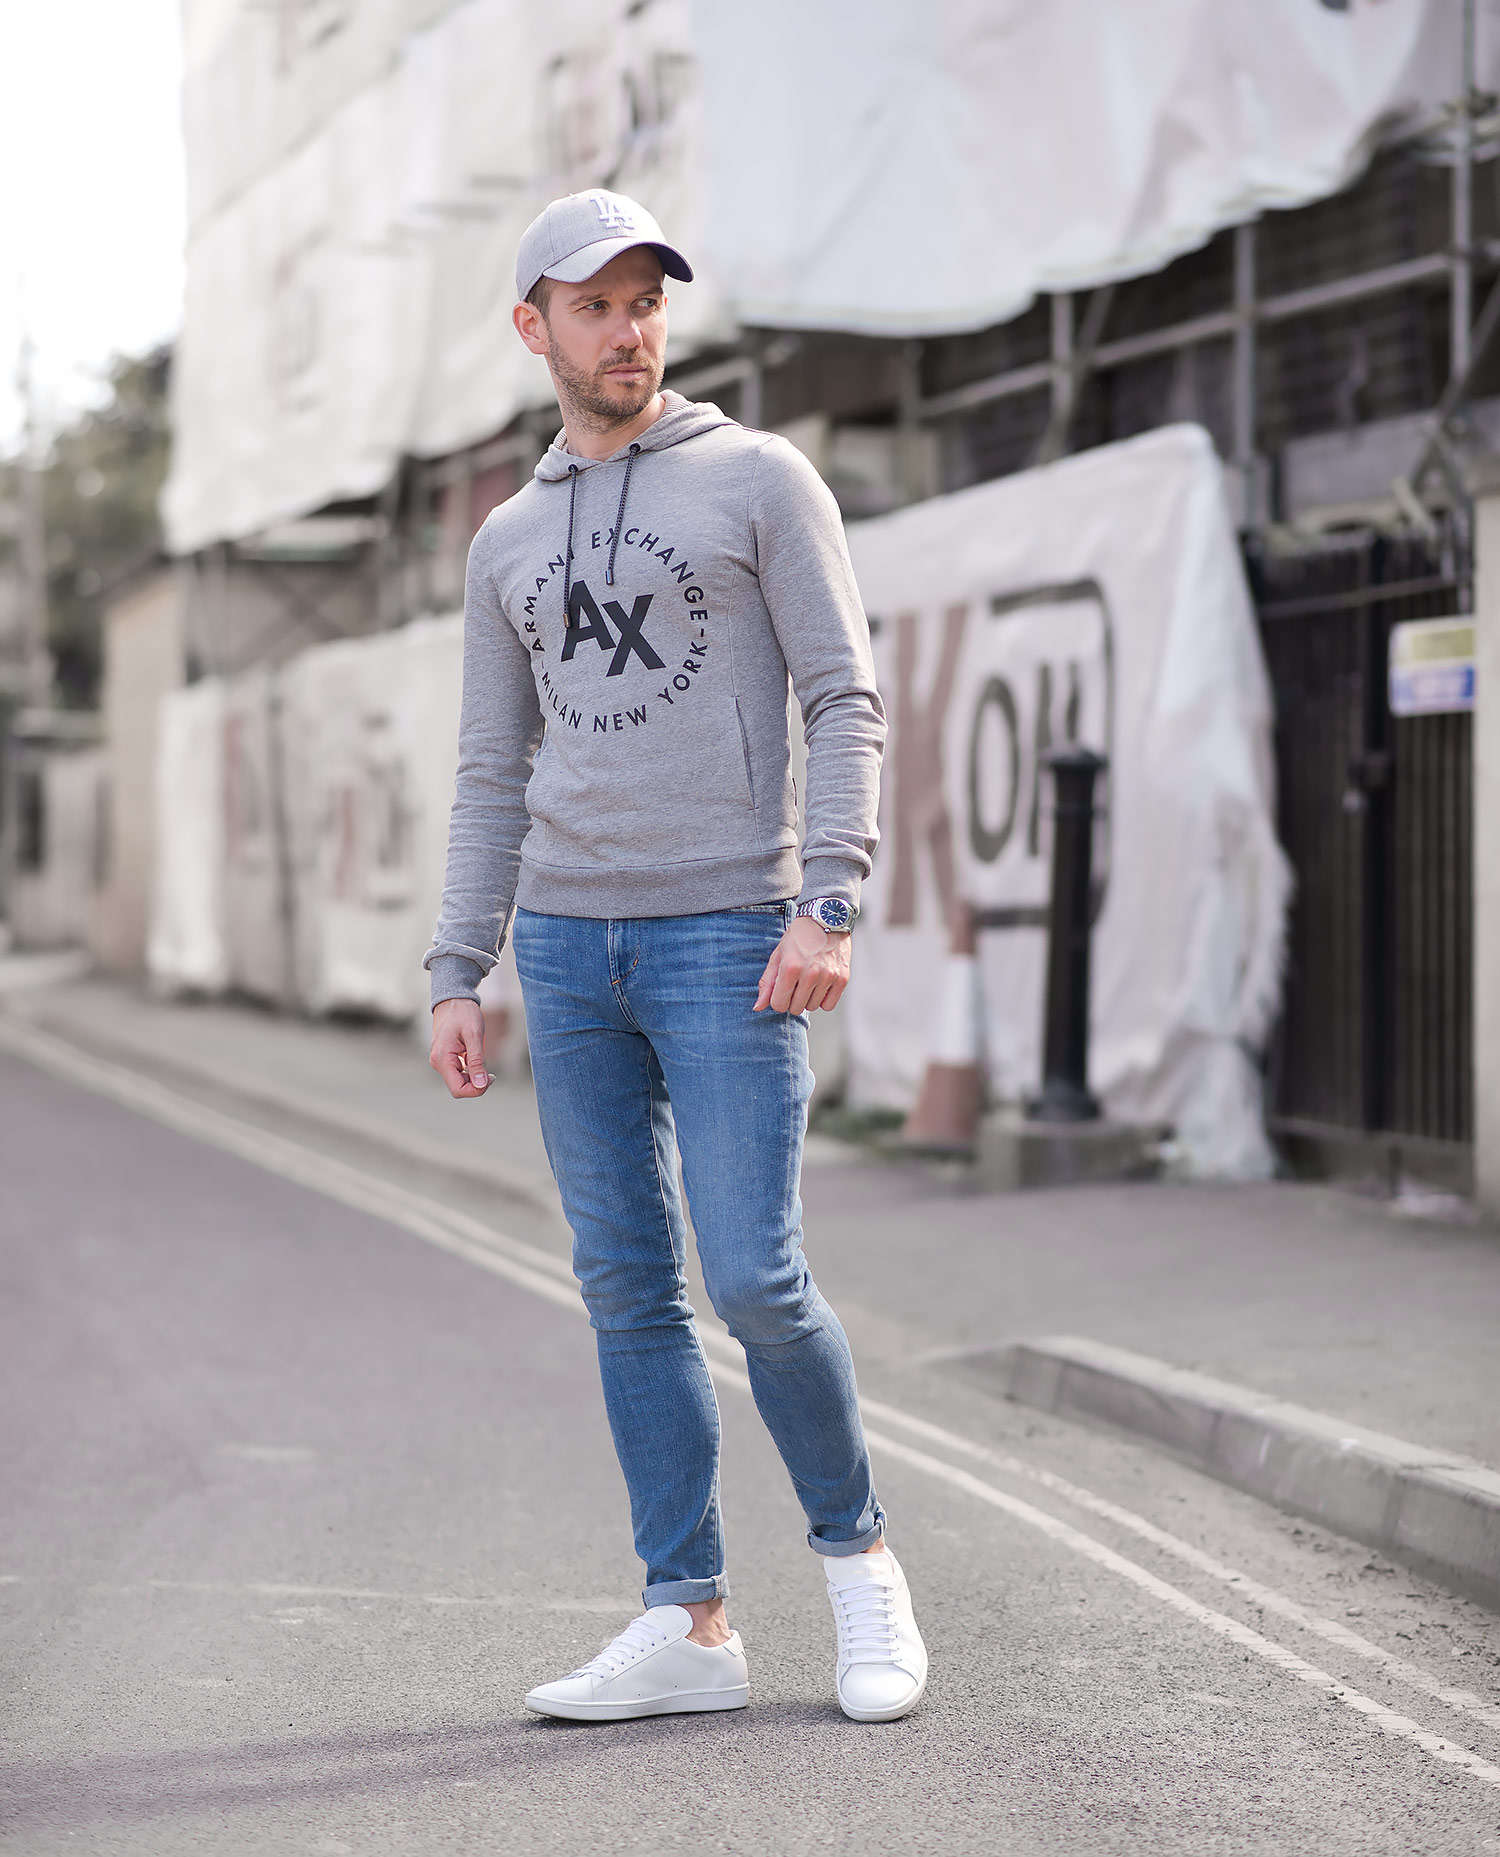 outlet store c1865 391d0 Armani Exchange Hooded Sweatshirt And Skinny Jeans Outfit ...